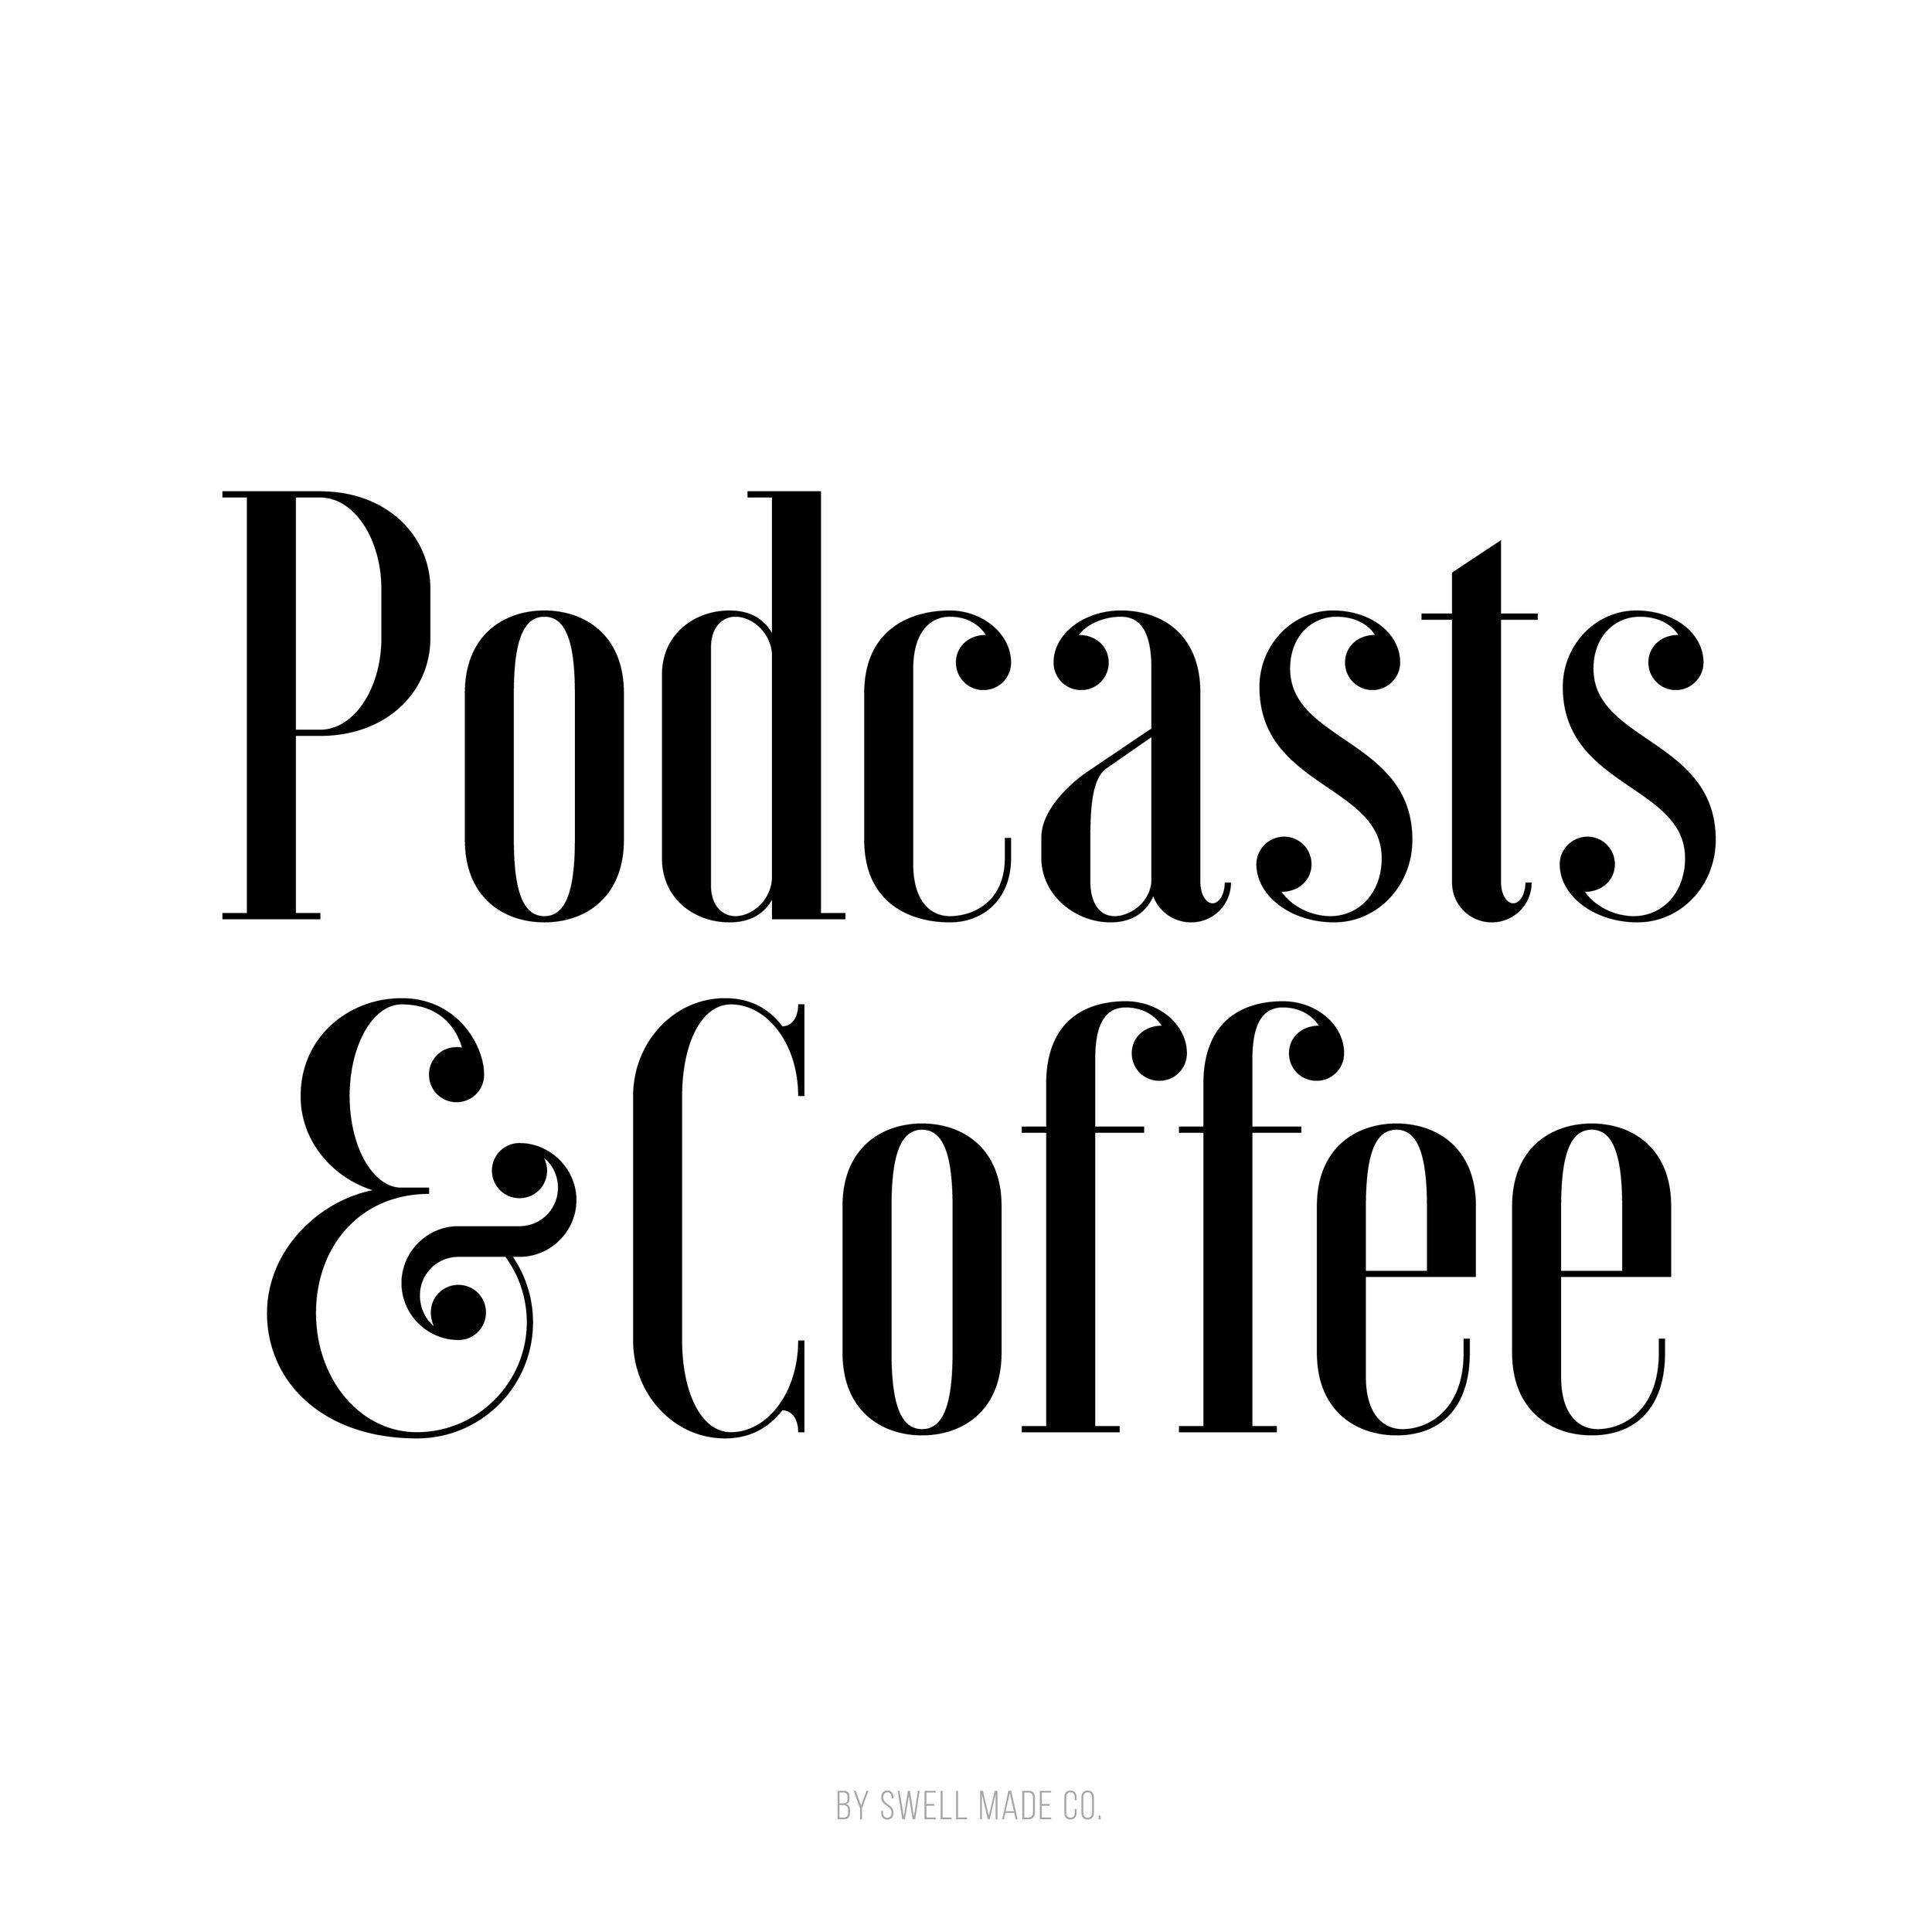 Podcasts & Coffee. The fall 2017 round up of podcasts to enjoy with coffee by Swell Made Co.